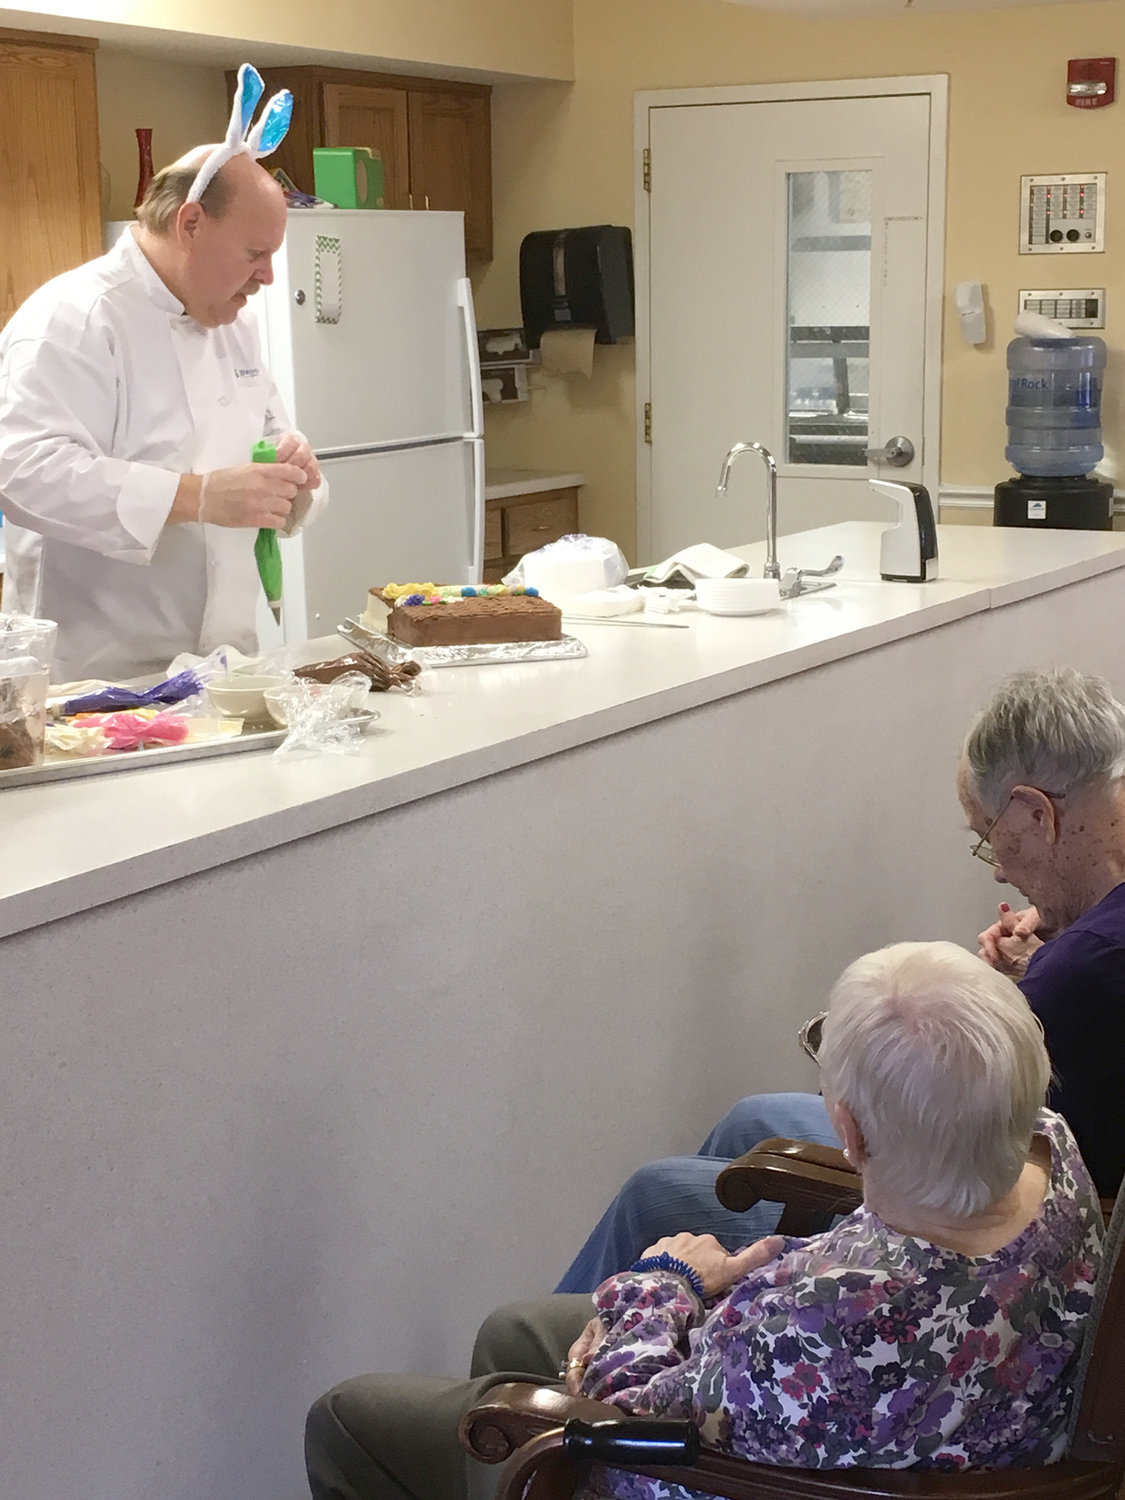 LEARNING EXPERIENCE — Residents of Brookdale Senior Living in Clinton watch as Chef Richard Fluharty demonstrates how to decorate an Easter basket carrot cake for the holidays.